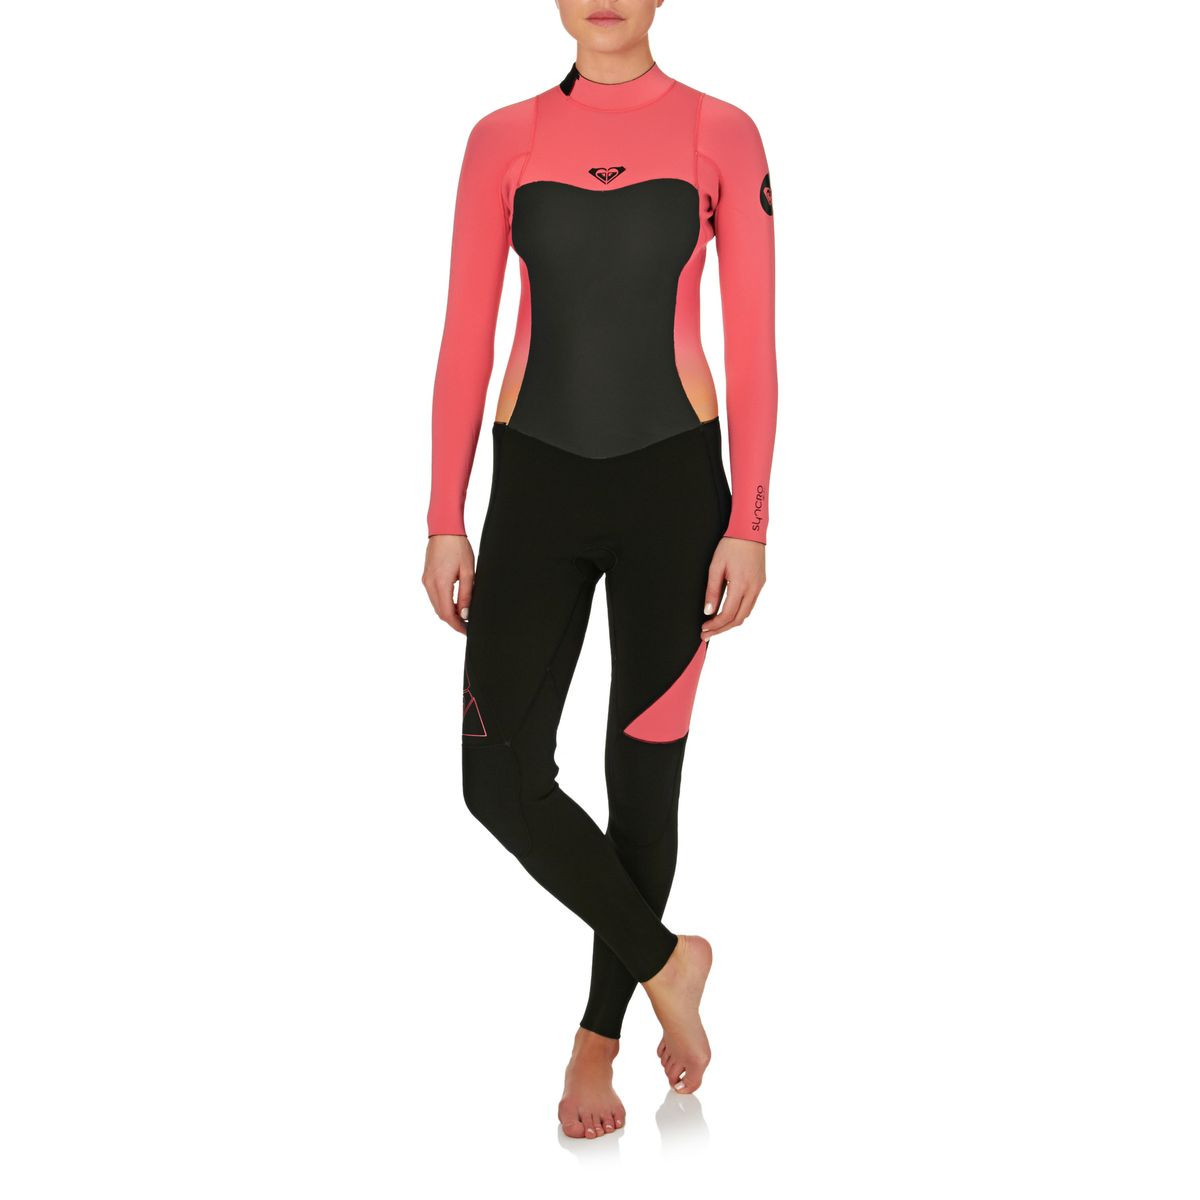 Roxy Womens Syncro 3/2mm Back Zip Wetsuit - Paradise Pink